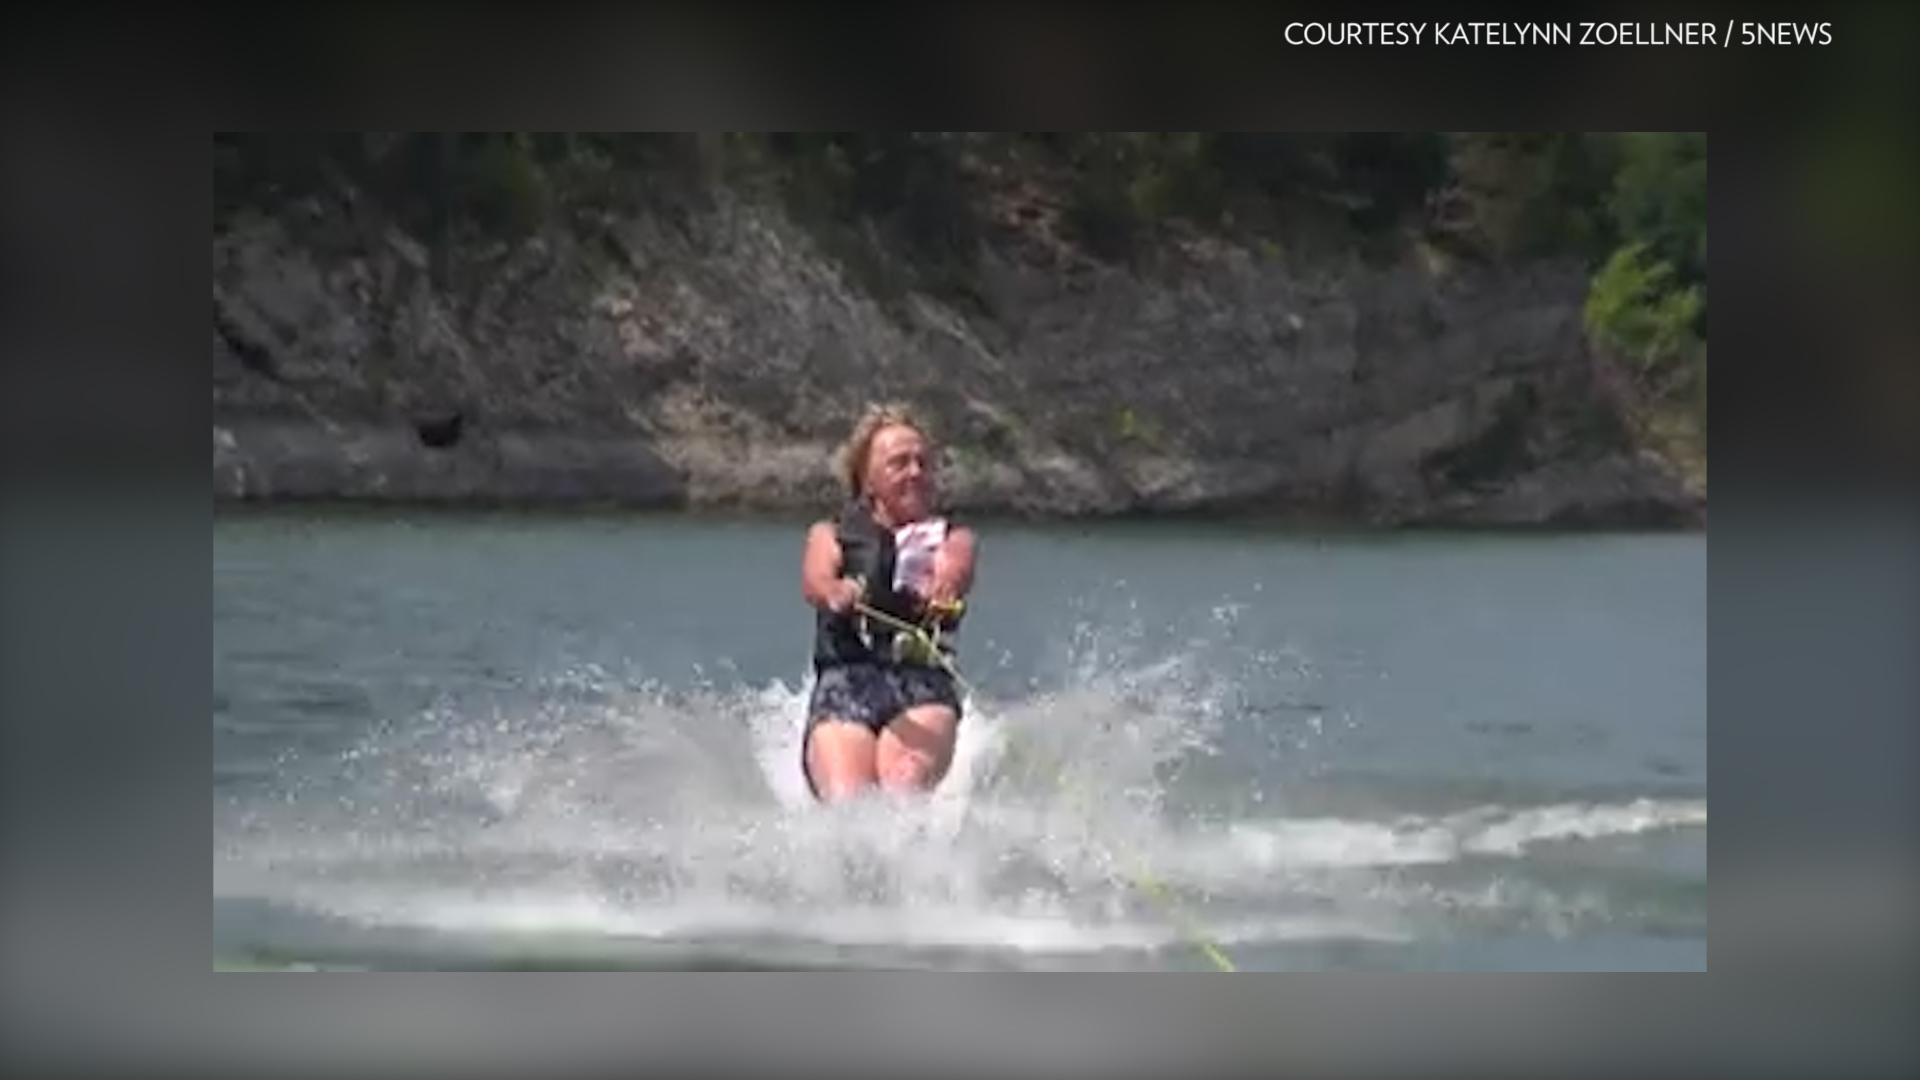 90-Year-Old Water-Skiing Granny Says 'It's No Fun Sitting at Home in a Rocking Chair!'